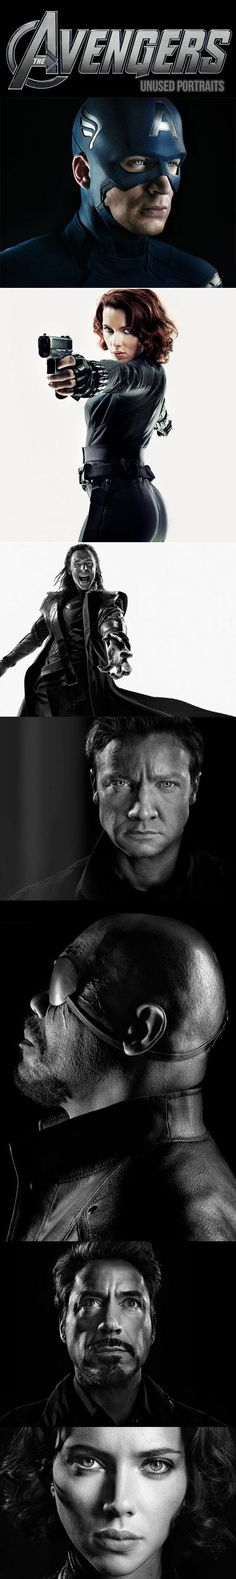 Awesome Unused Portraits From The Avengers // funny pictures - funny photos - funny images - funny pics - funny quotes - #lol #humor #funnypictures